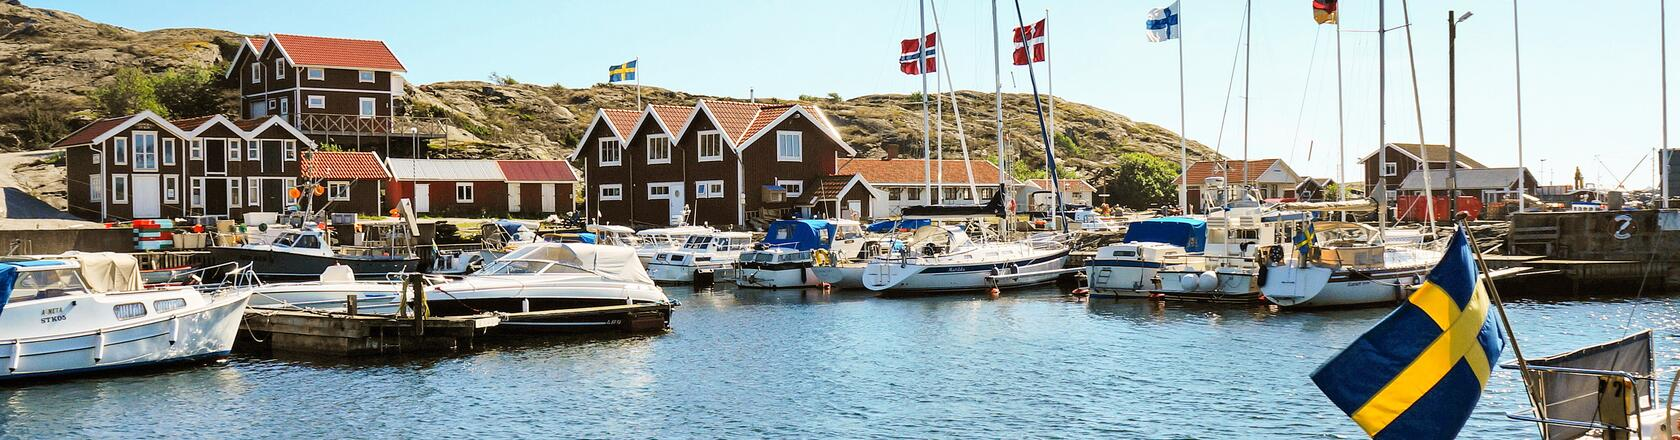 Karlsborg in Sweden — Rent a holiday home with DanCenter